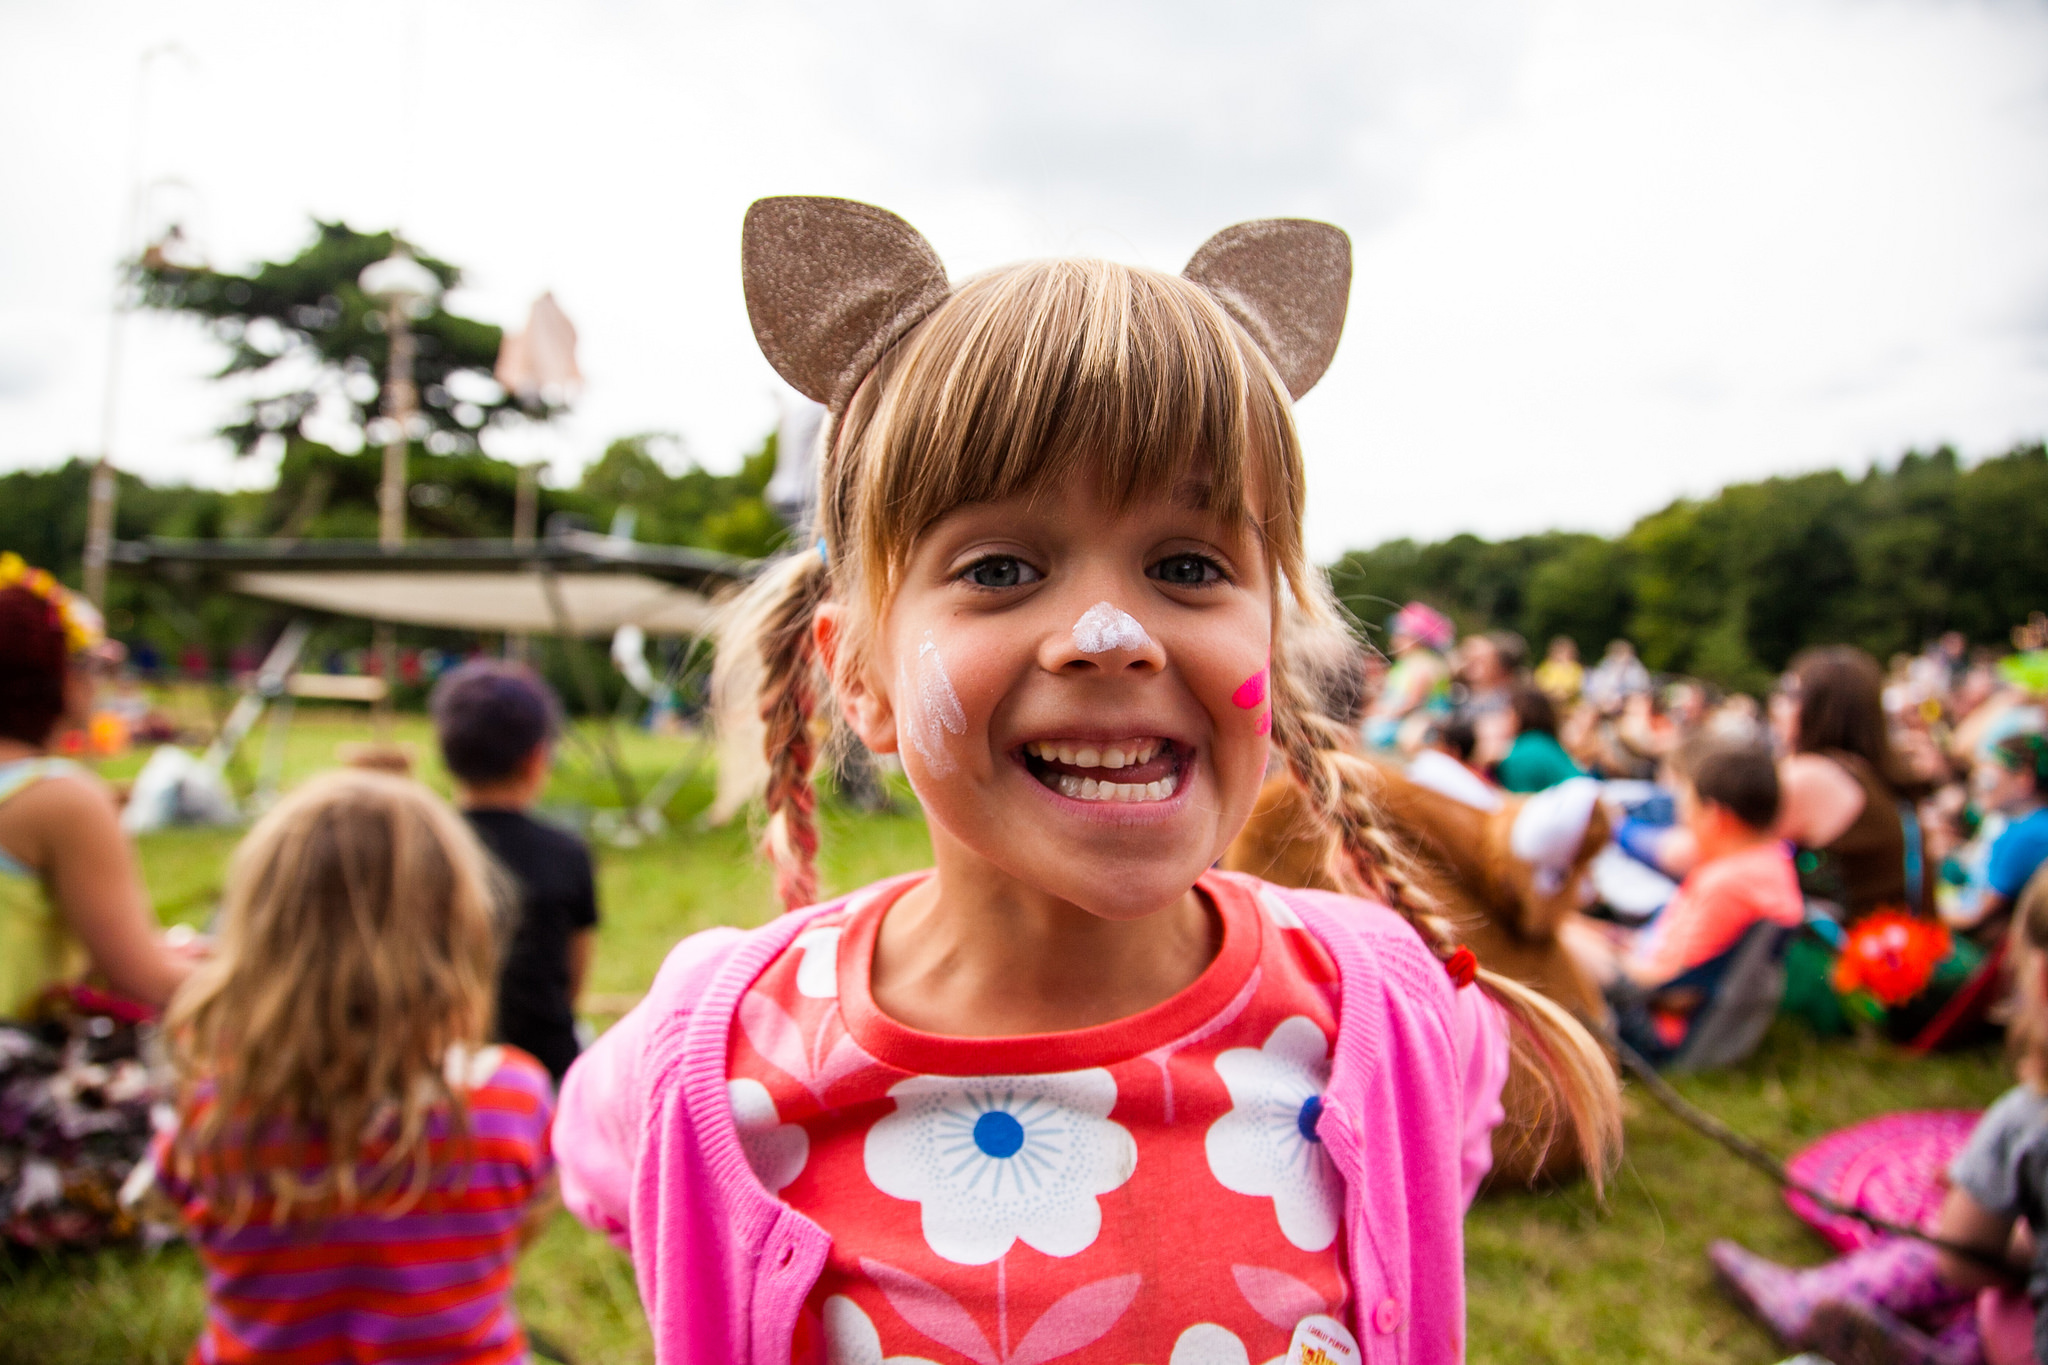 Top 5 Tips for Choosing a Family Friendly Festival